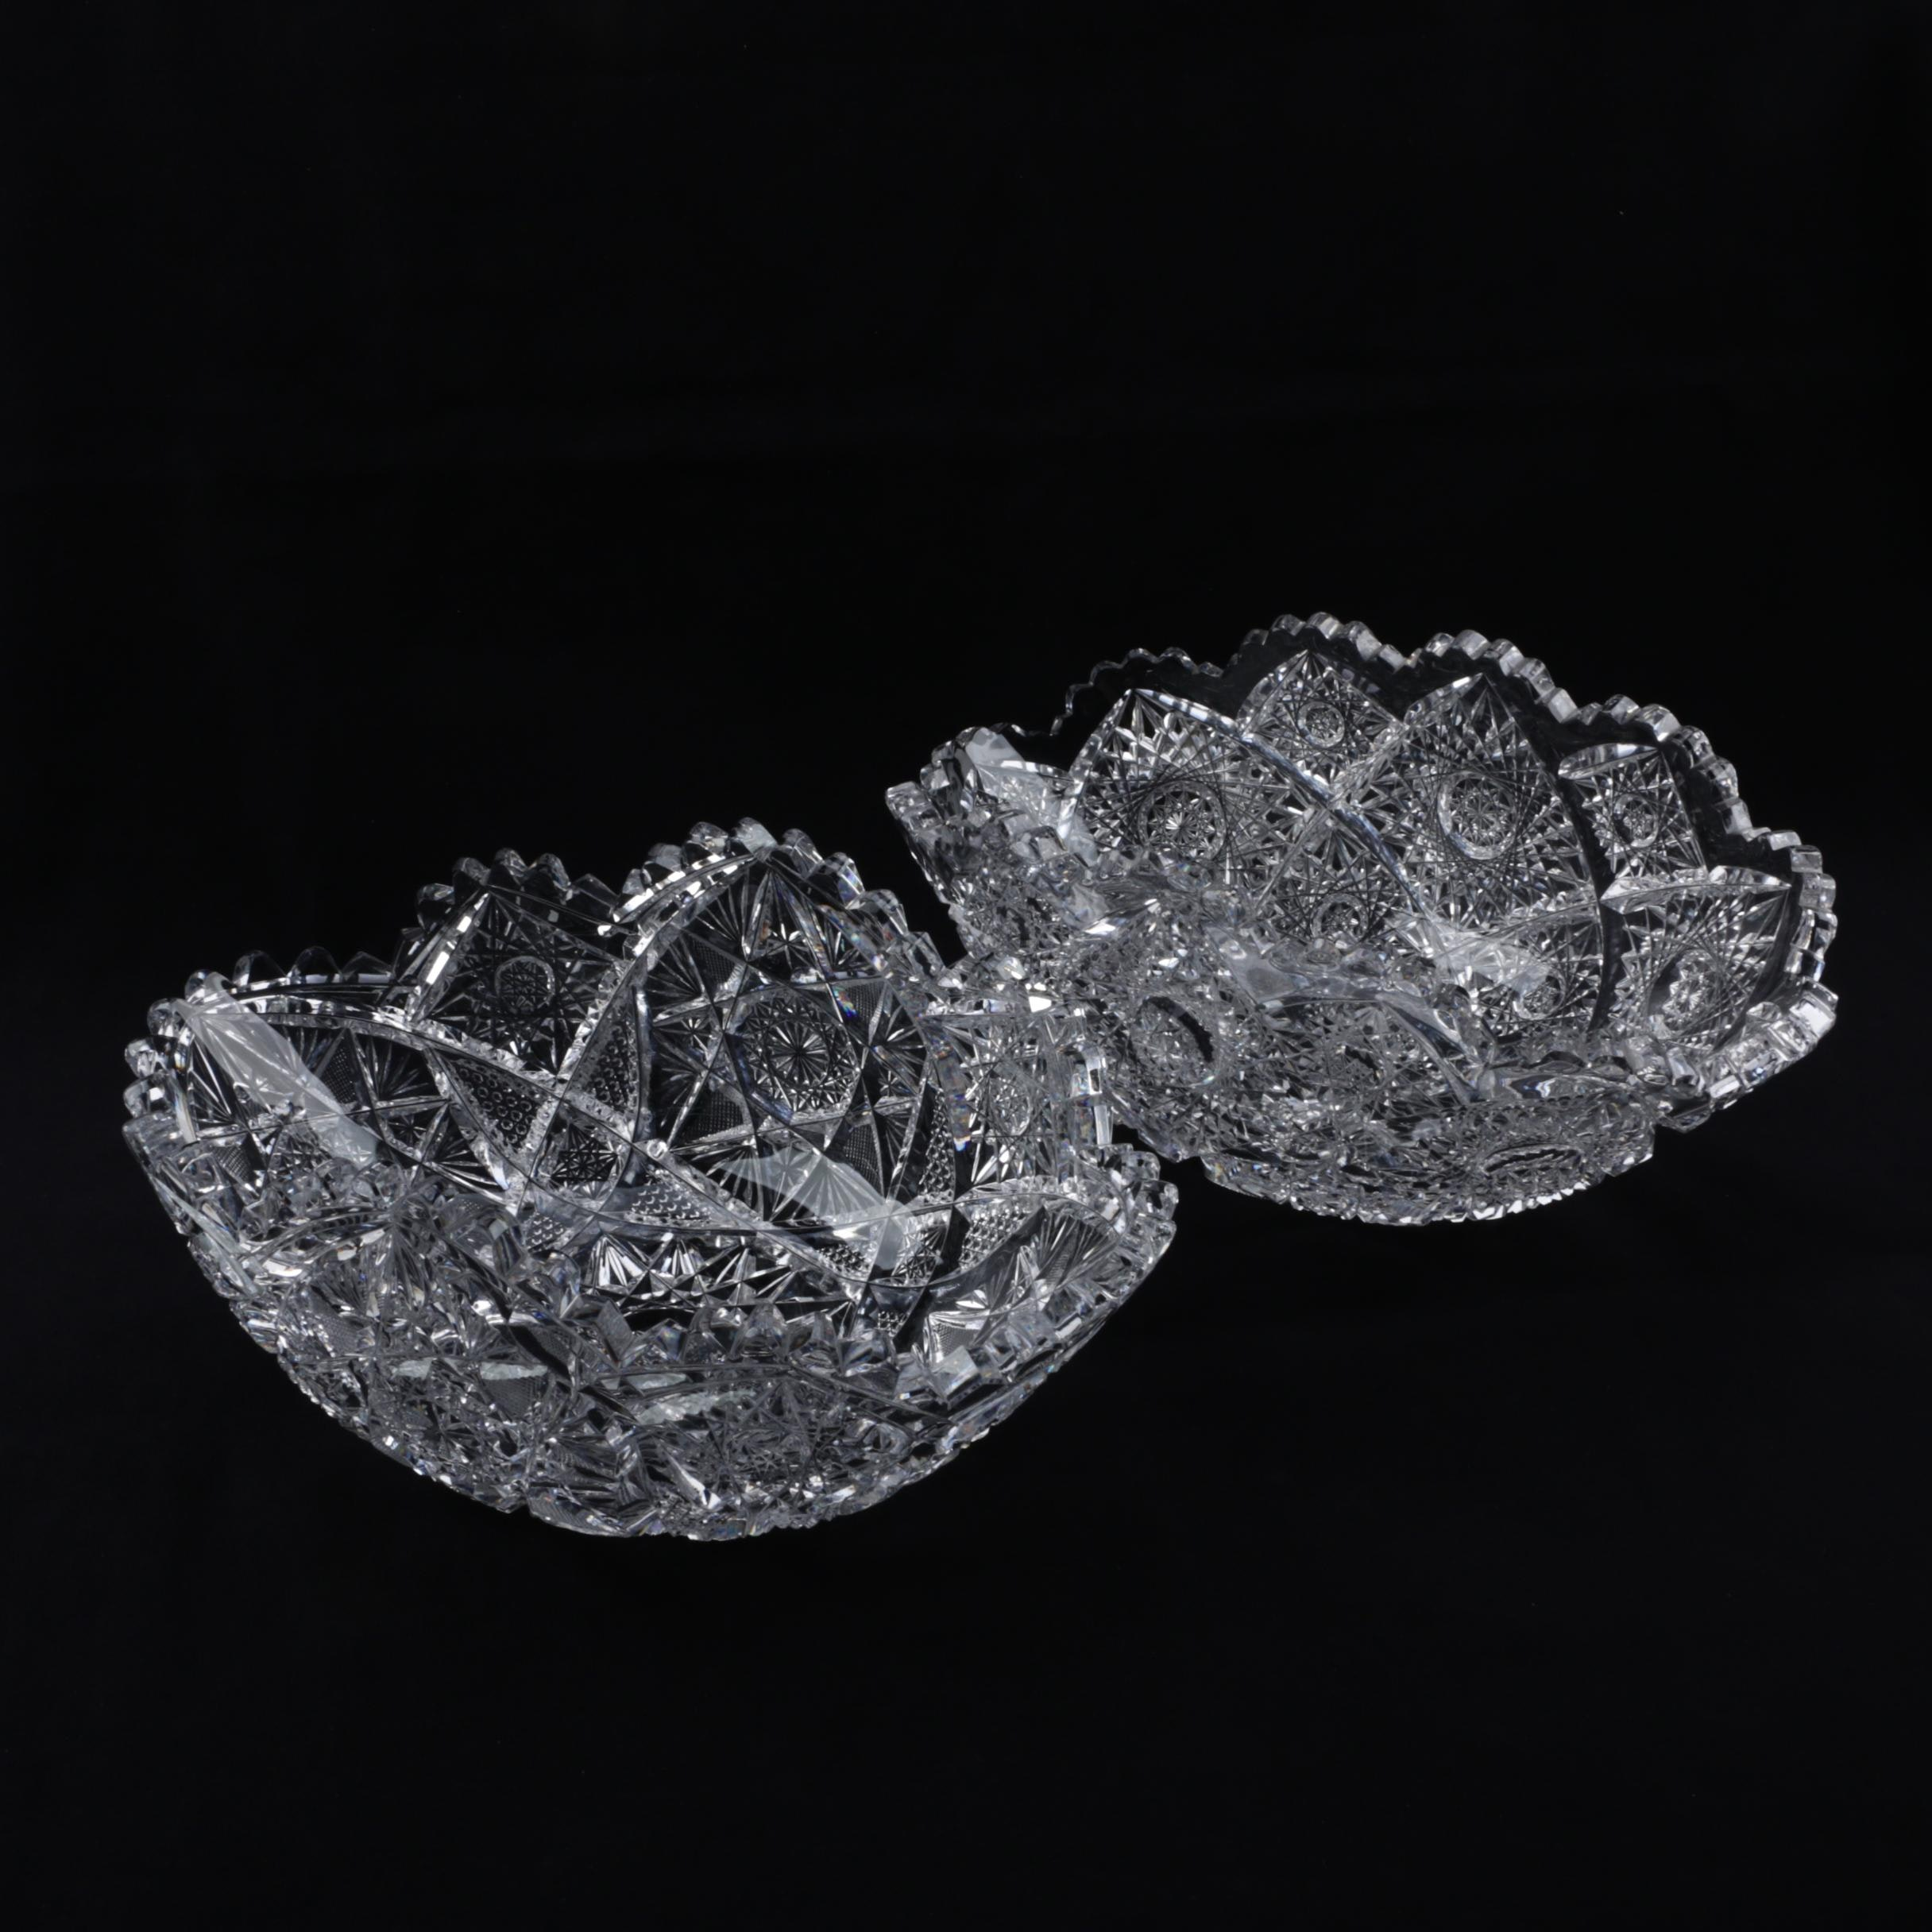 Antique American Brilliant Period Cut Glass Bowls